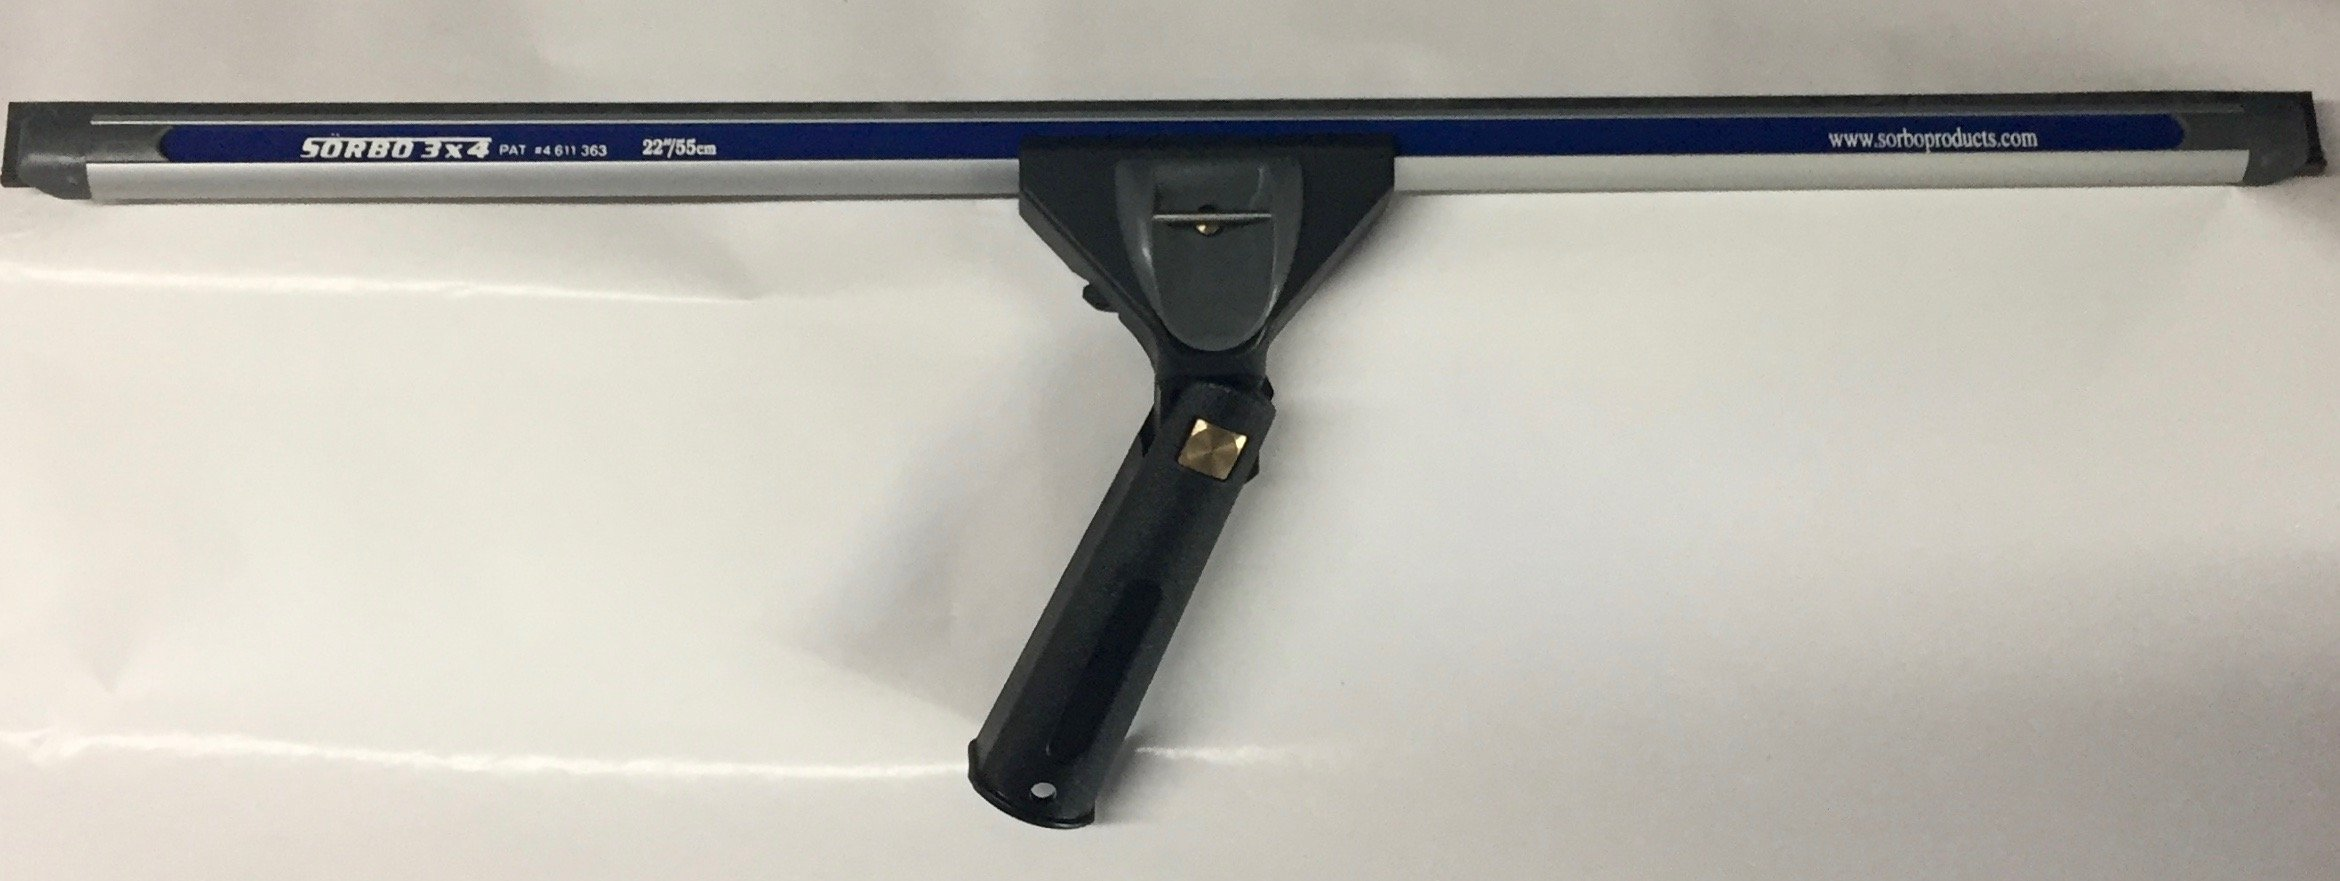 Sorbo 22 Inch Professional Window Squeegee